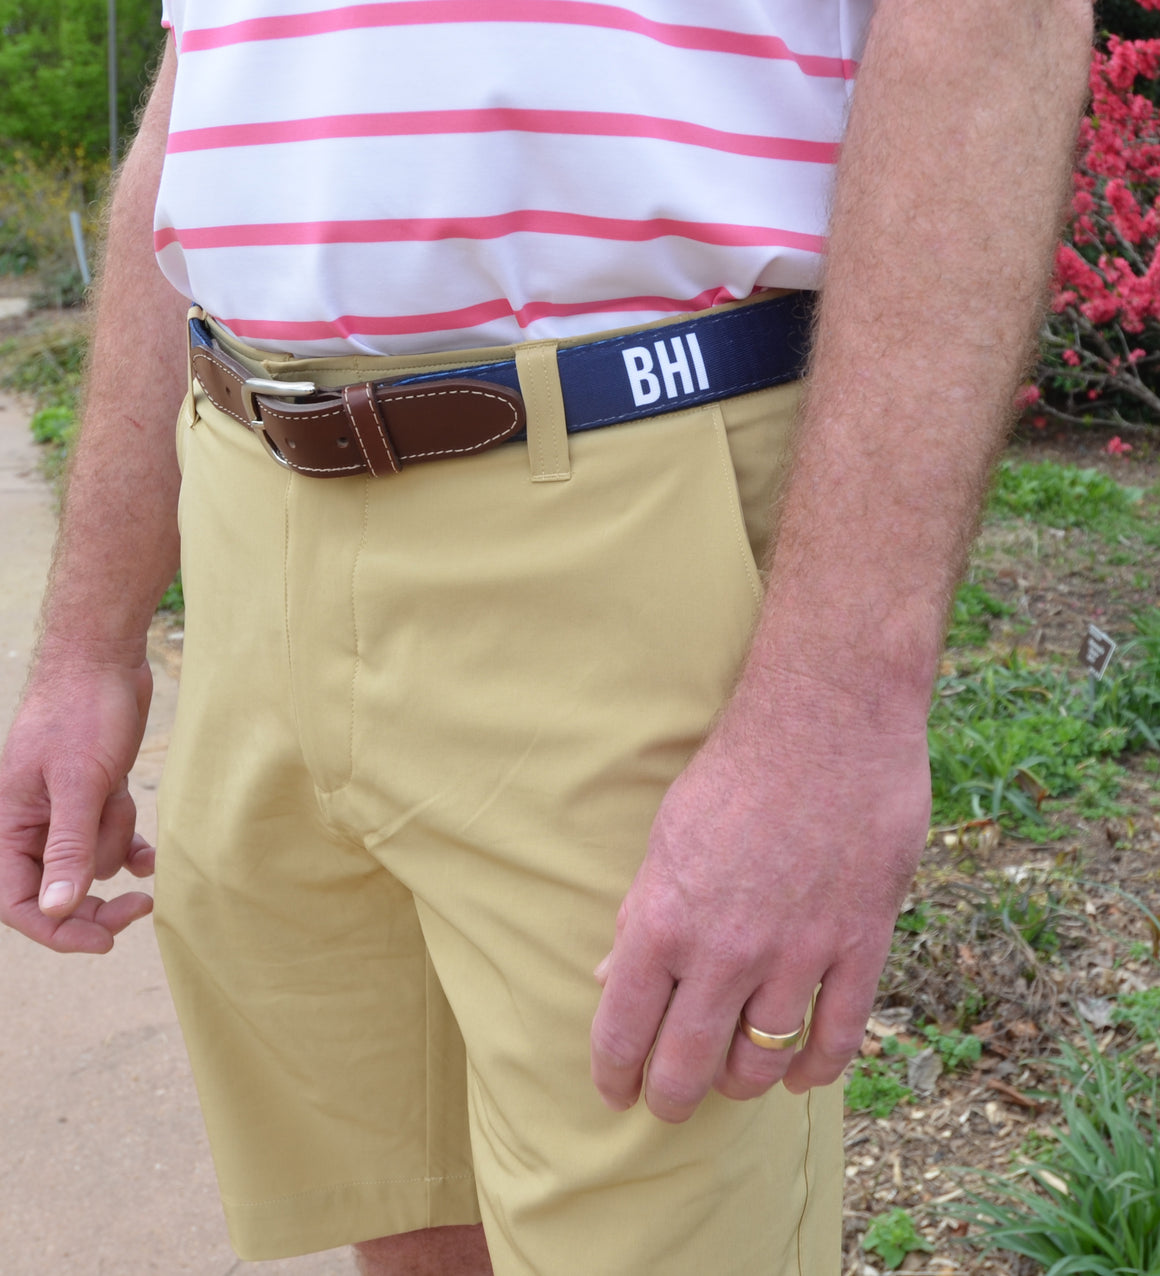 Printed Belt - Navy w/ BHI Text